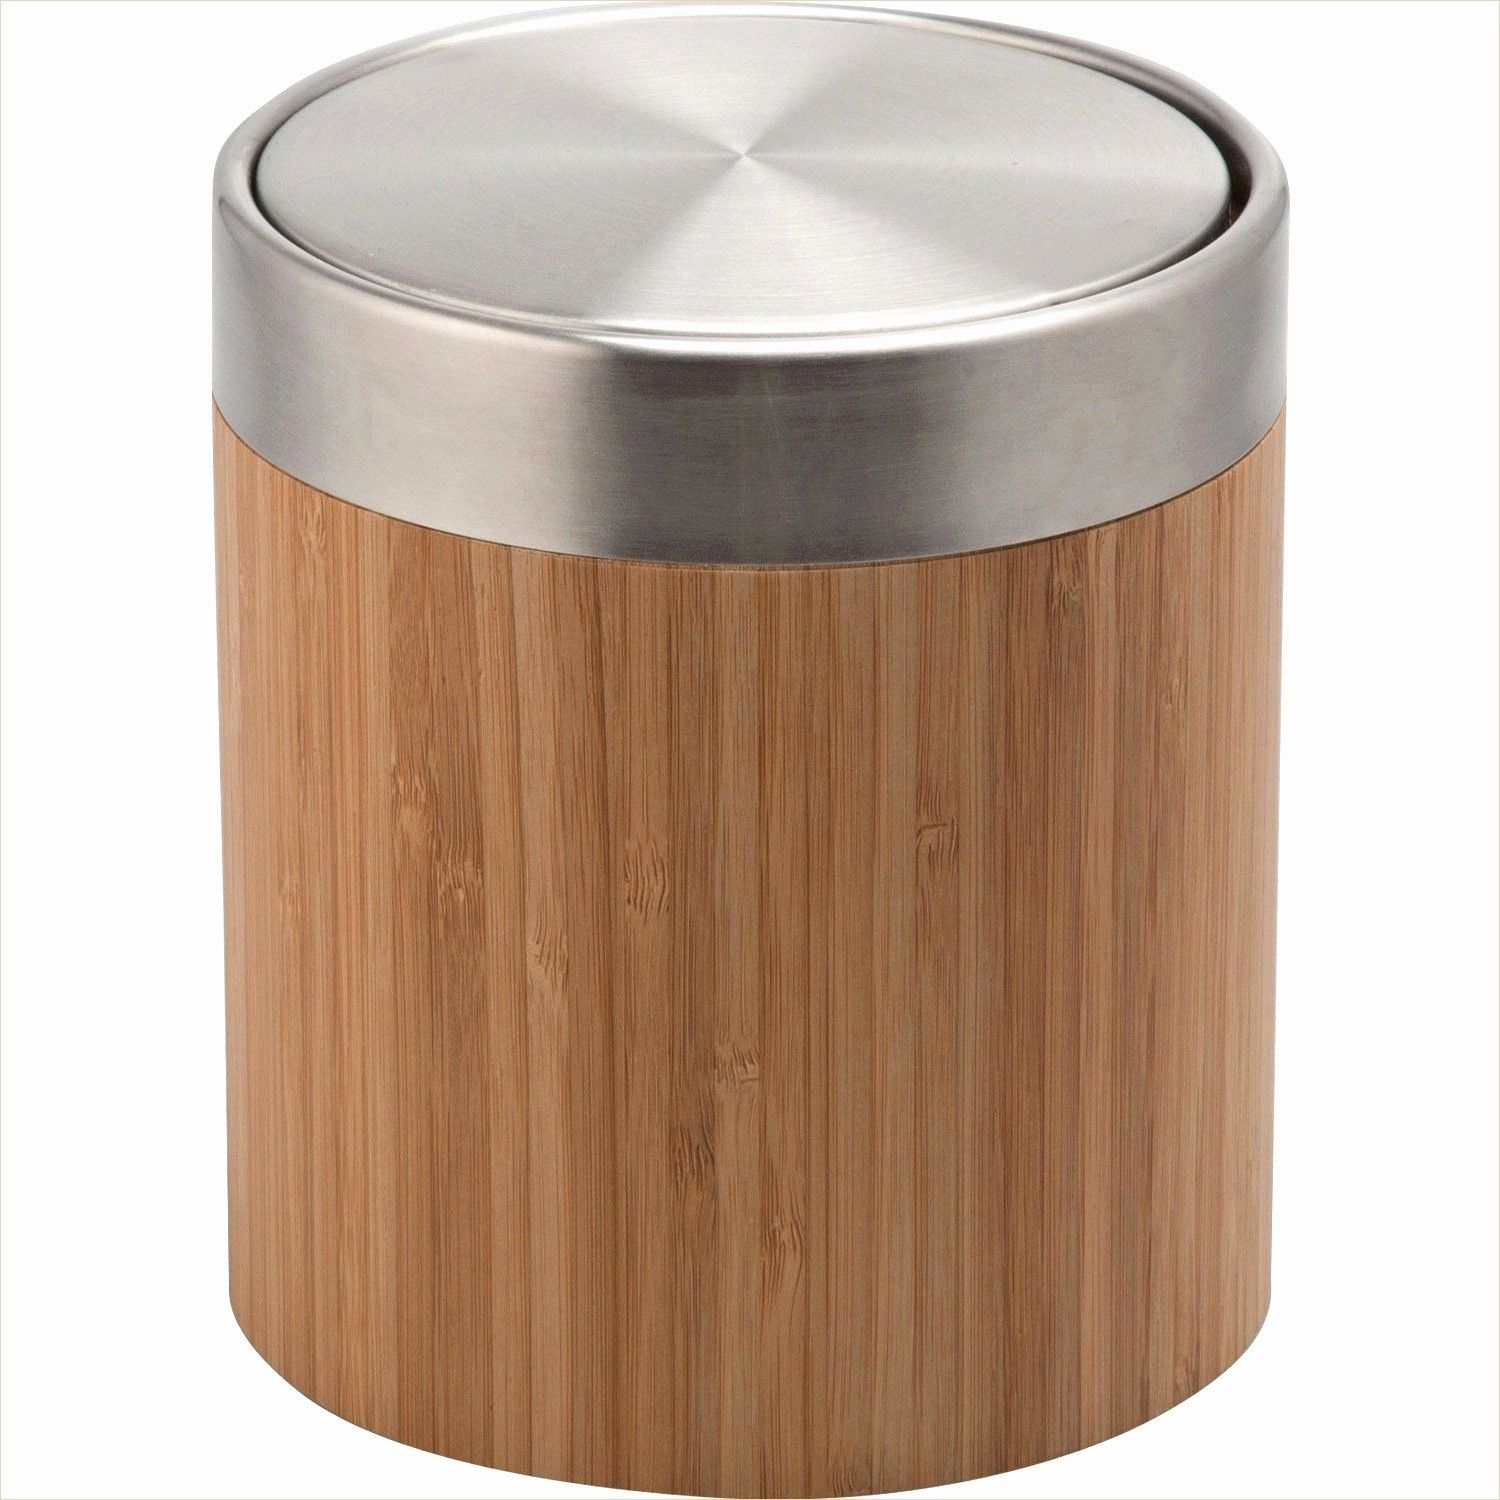 Awesome Palette Plastique Castorama Small Trash Can Transforming Furniture Cool Furniture